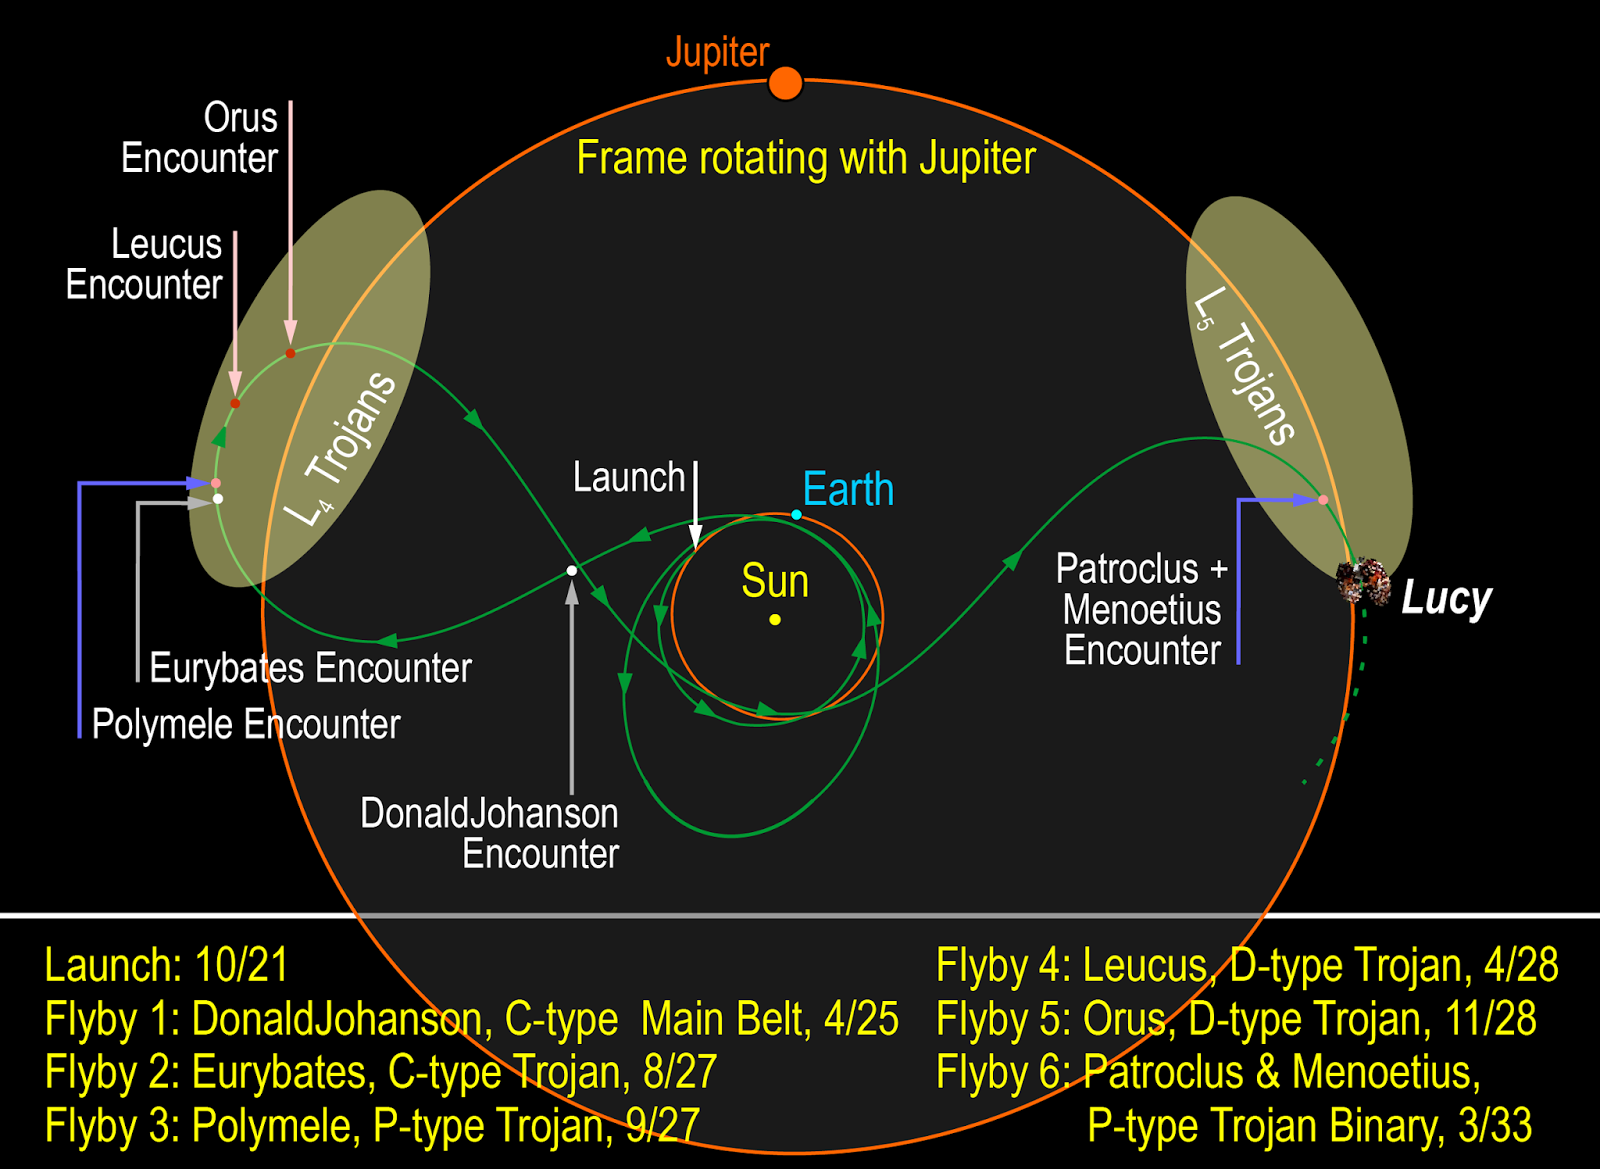 Lucy's proposed trajectory